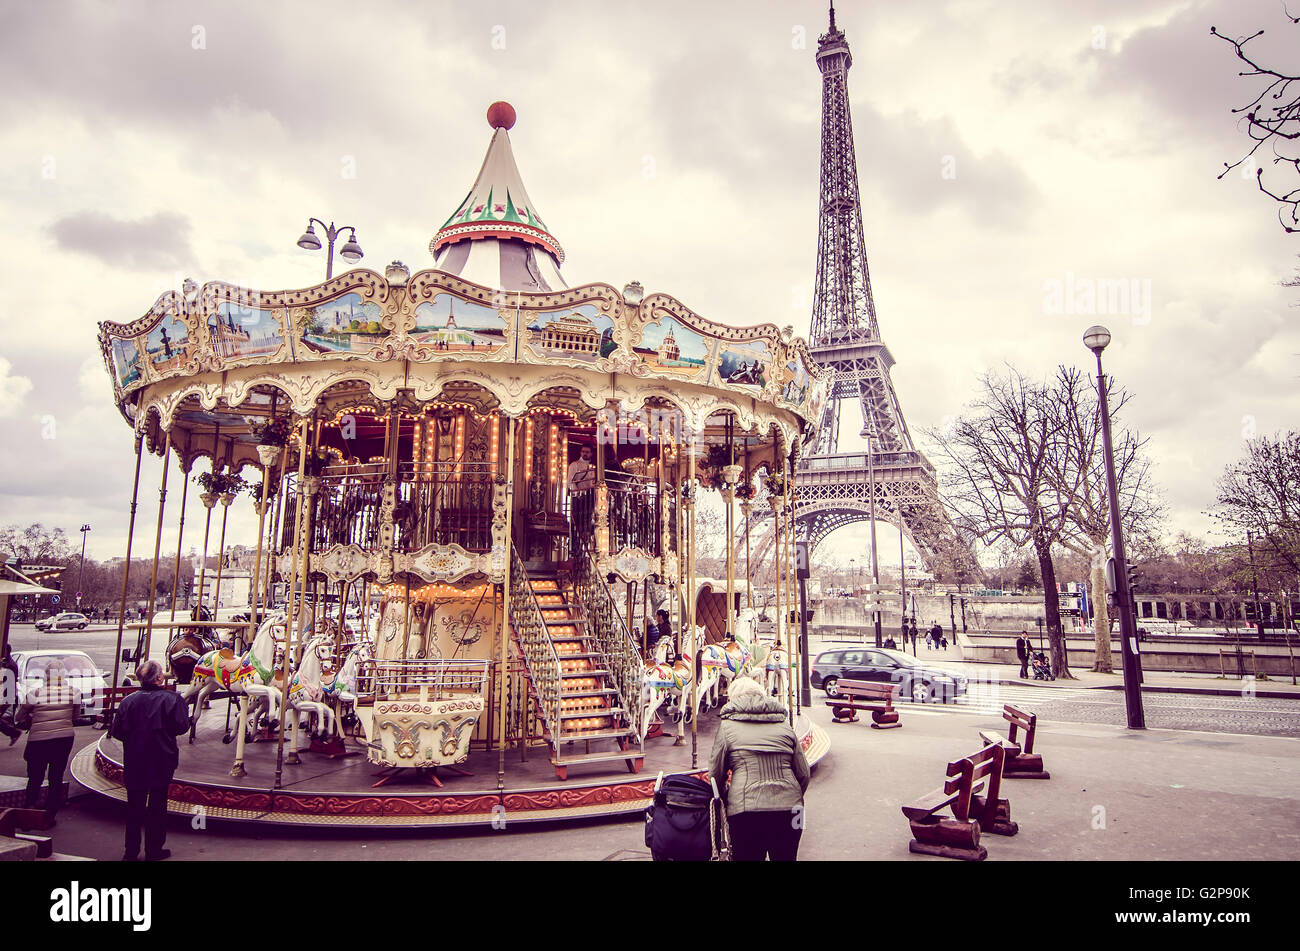 Paris, France - March 18, 2012: Children accompanied by their parents and grandparents play the carousel of the - Stock Image